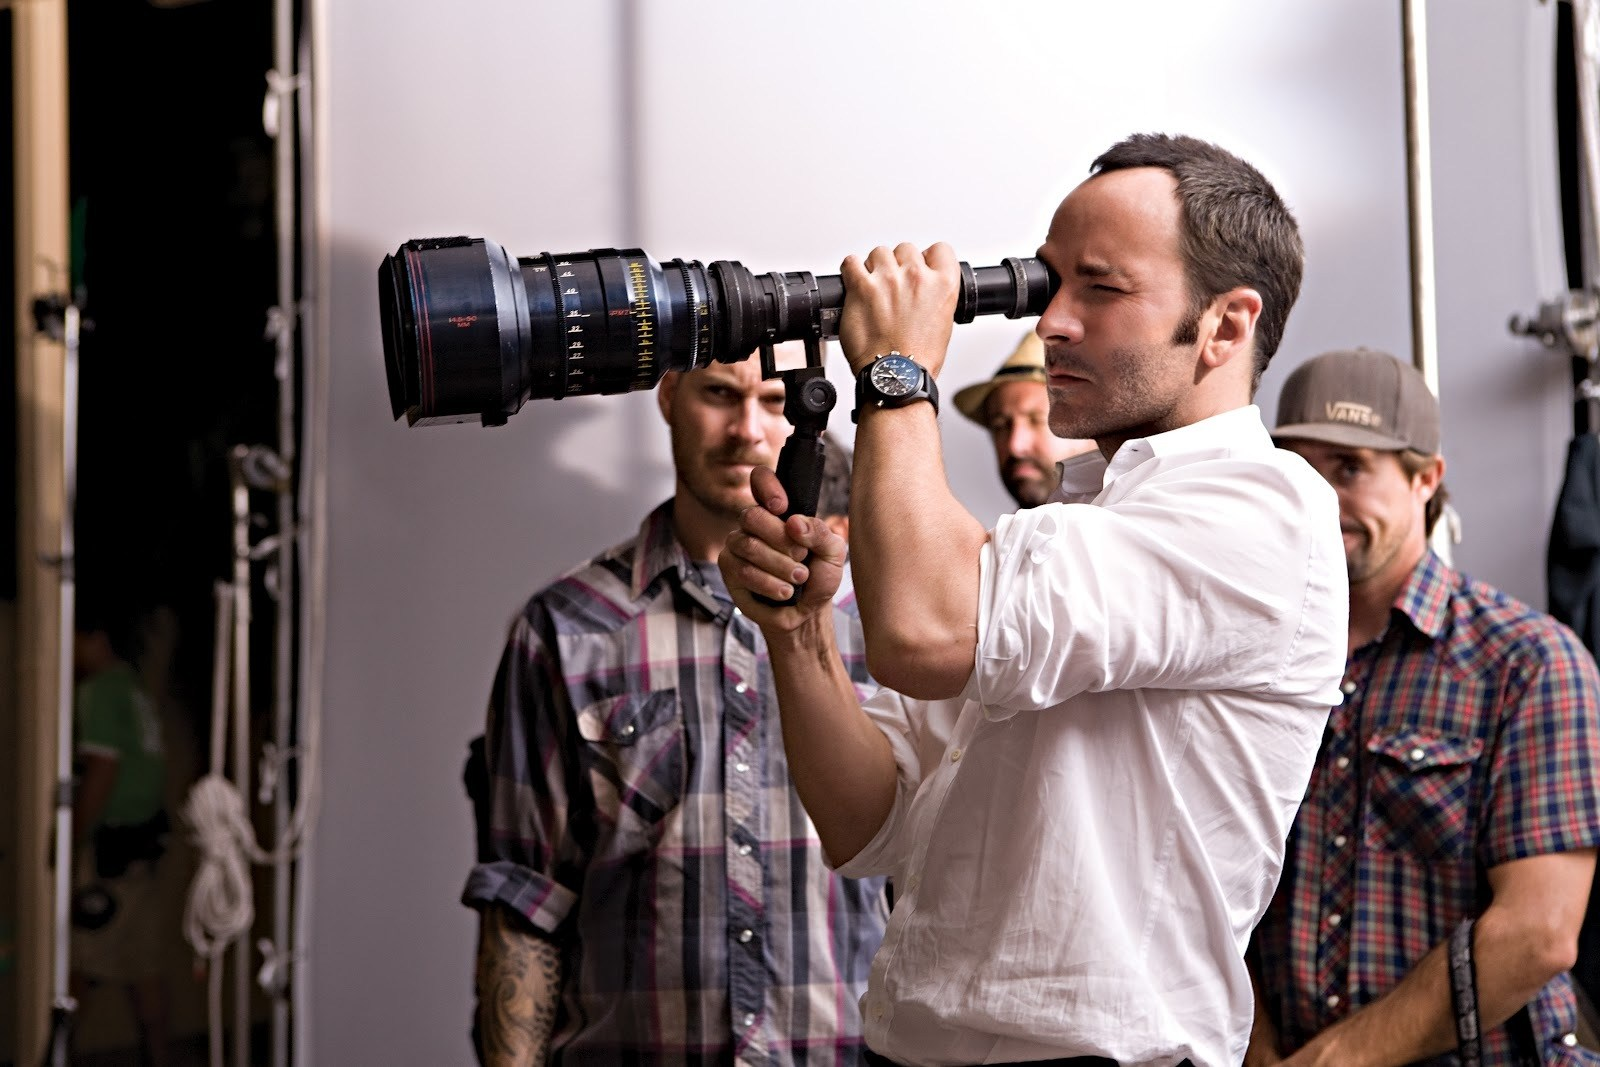 Tom Ford : A Single Man (2009) Behind the Scenes